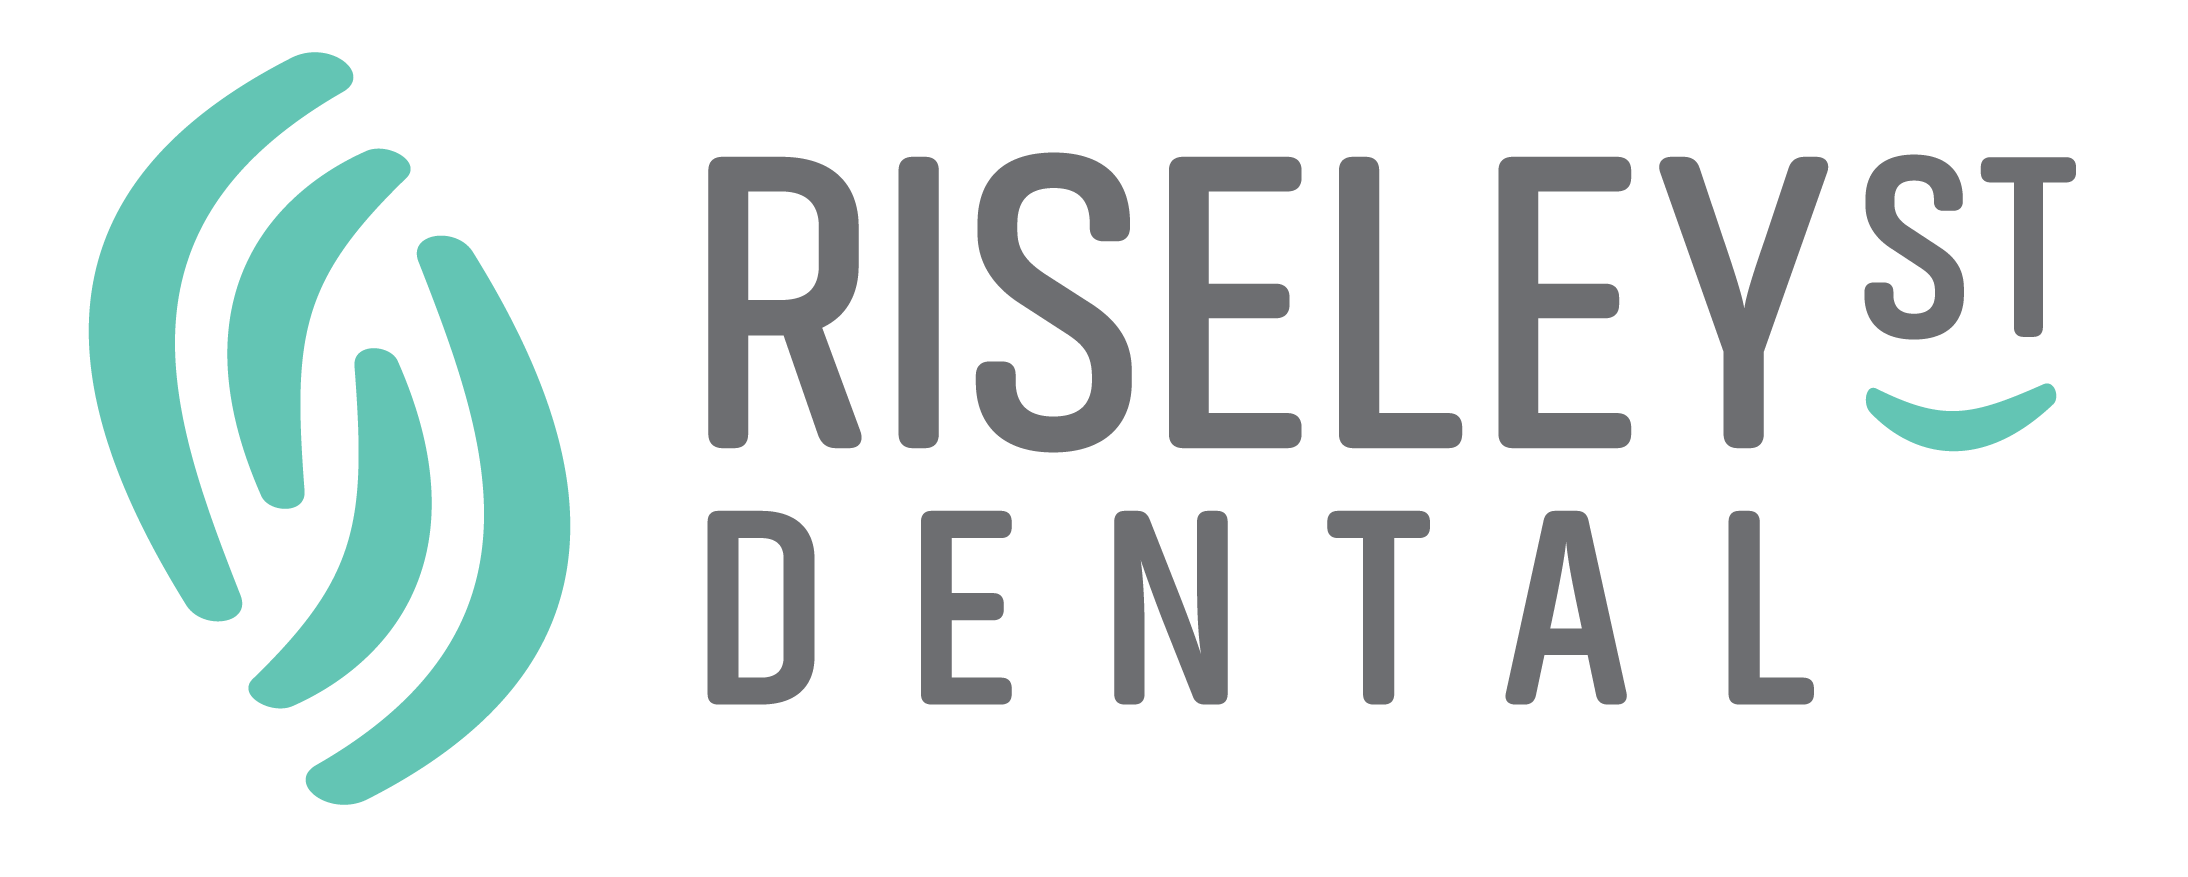 Riseley Street Dental